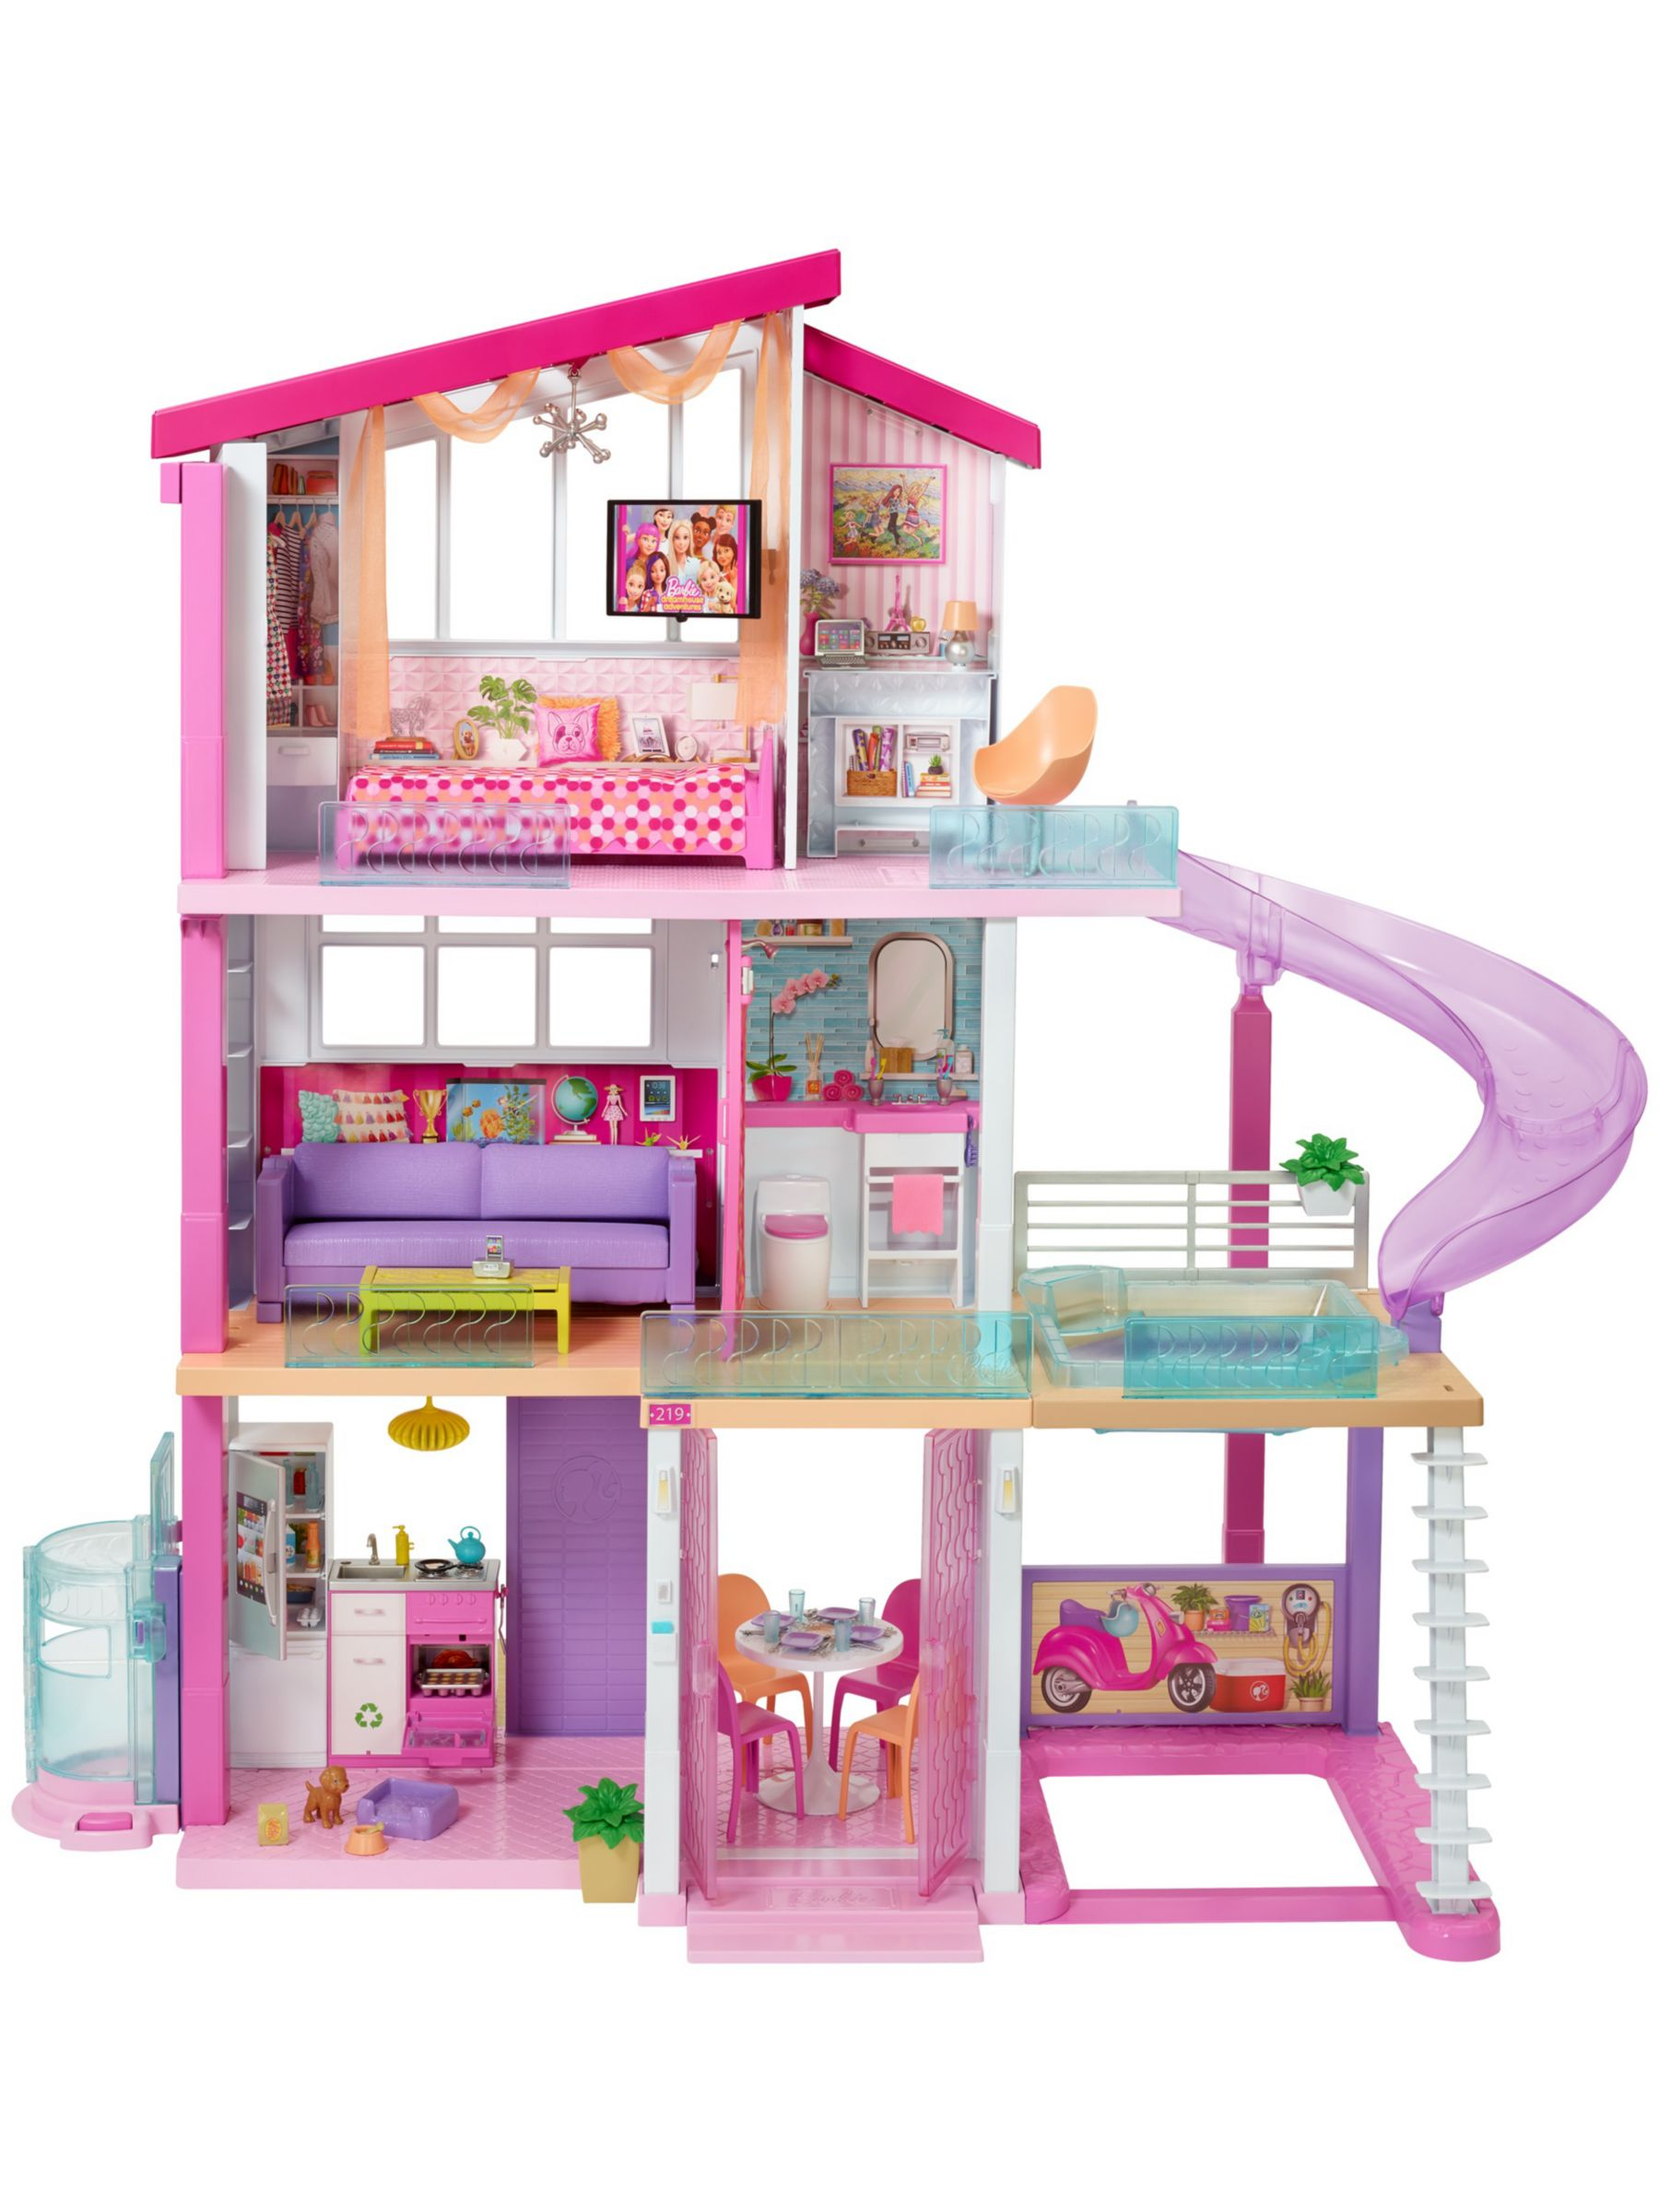 Barbie Dreamhouse With Slide At John